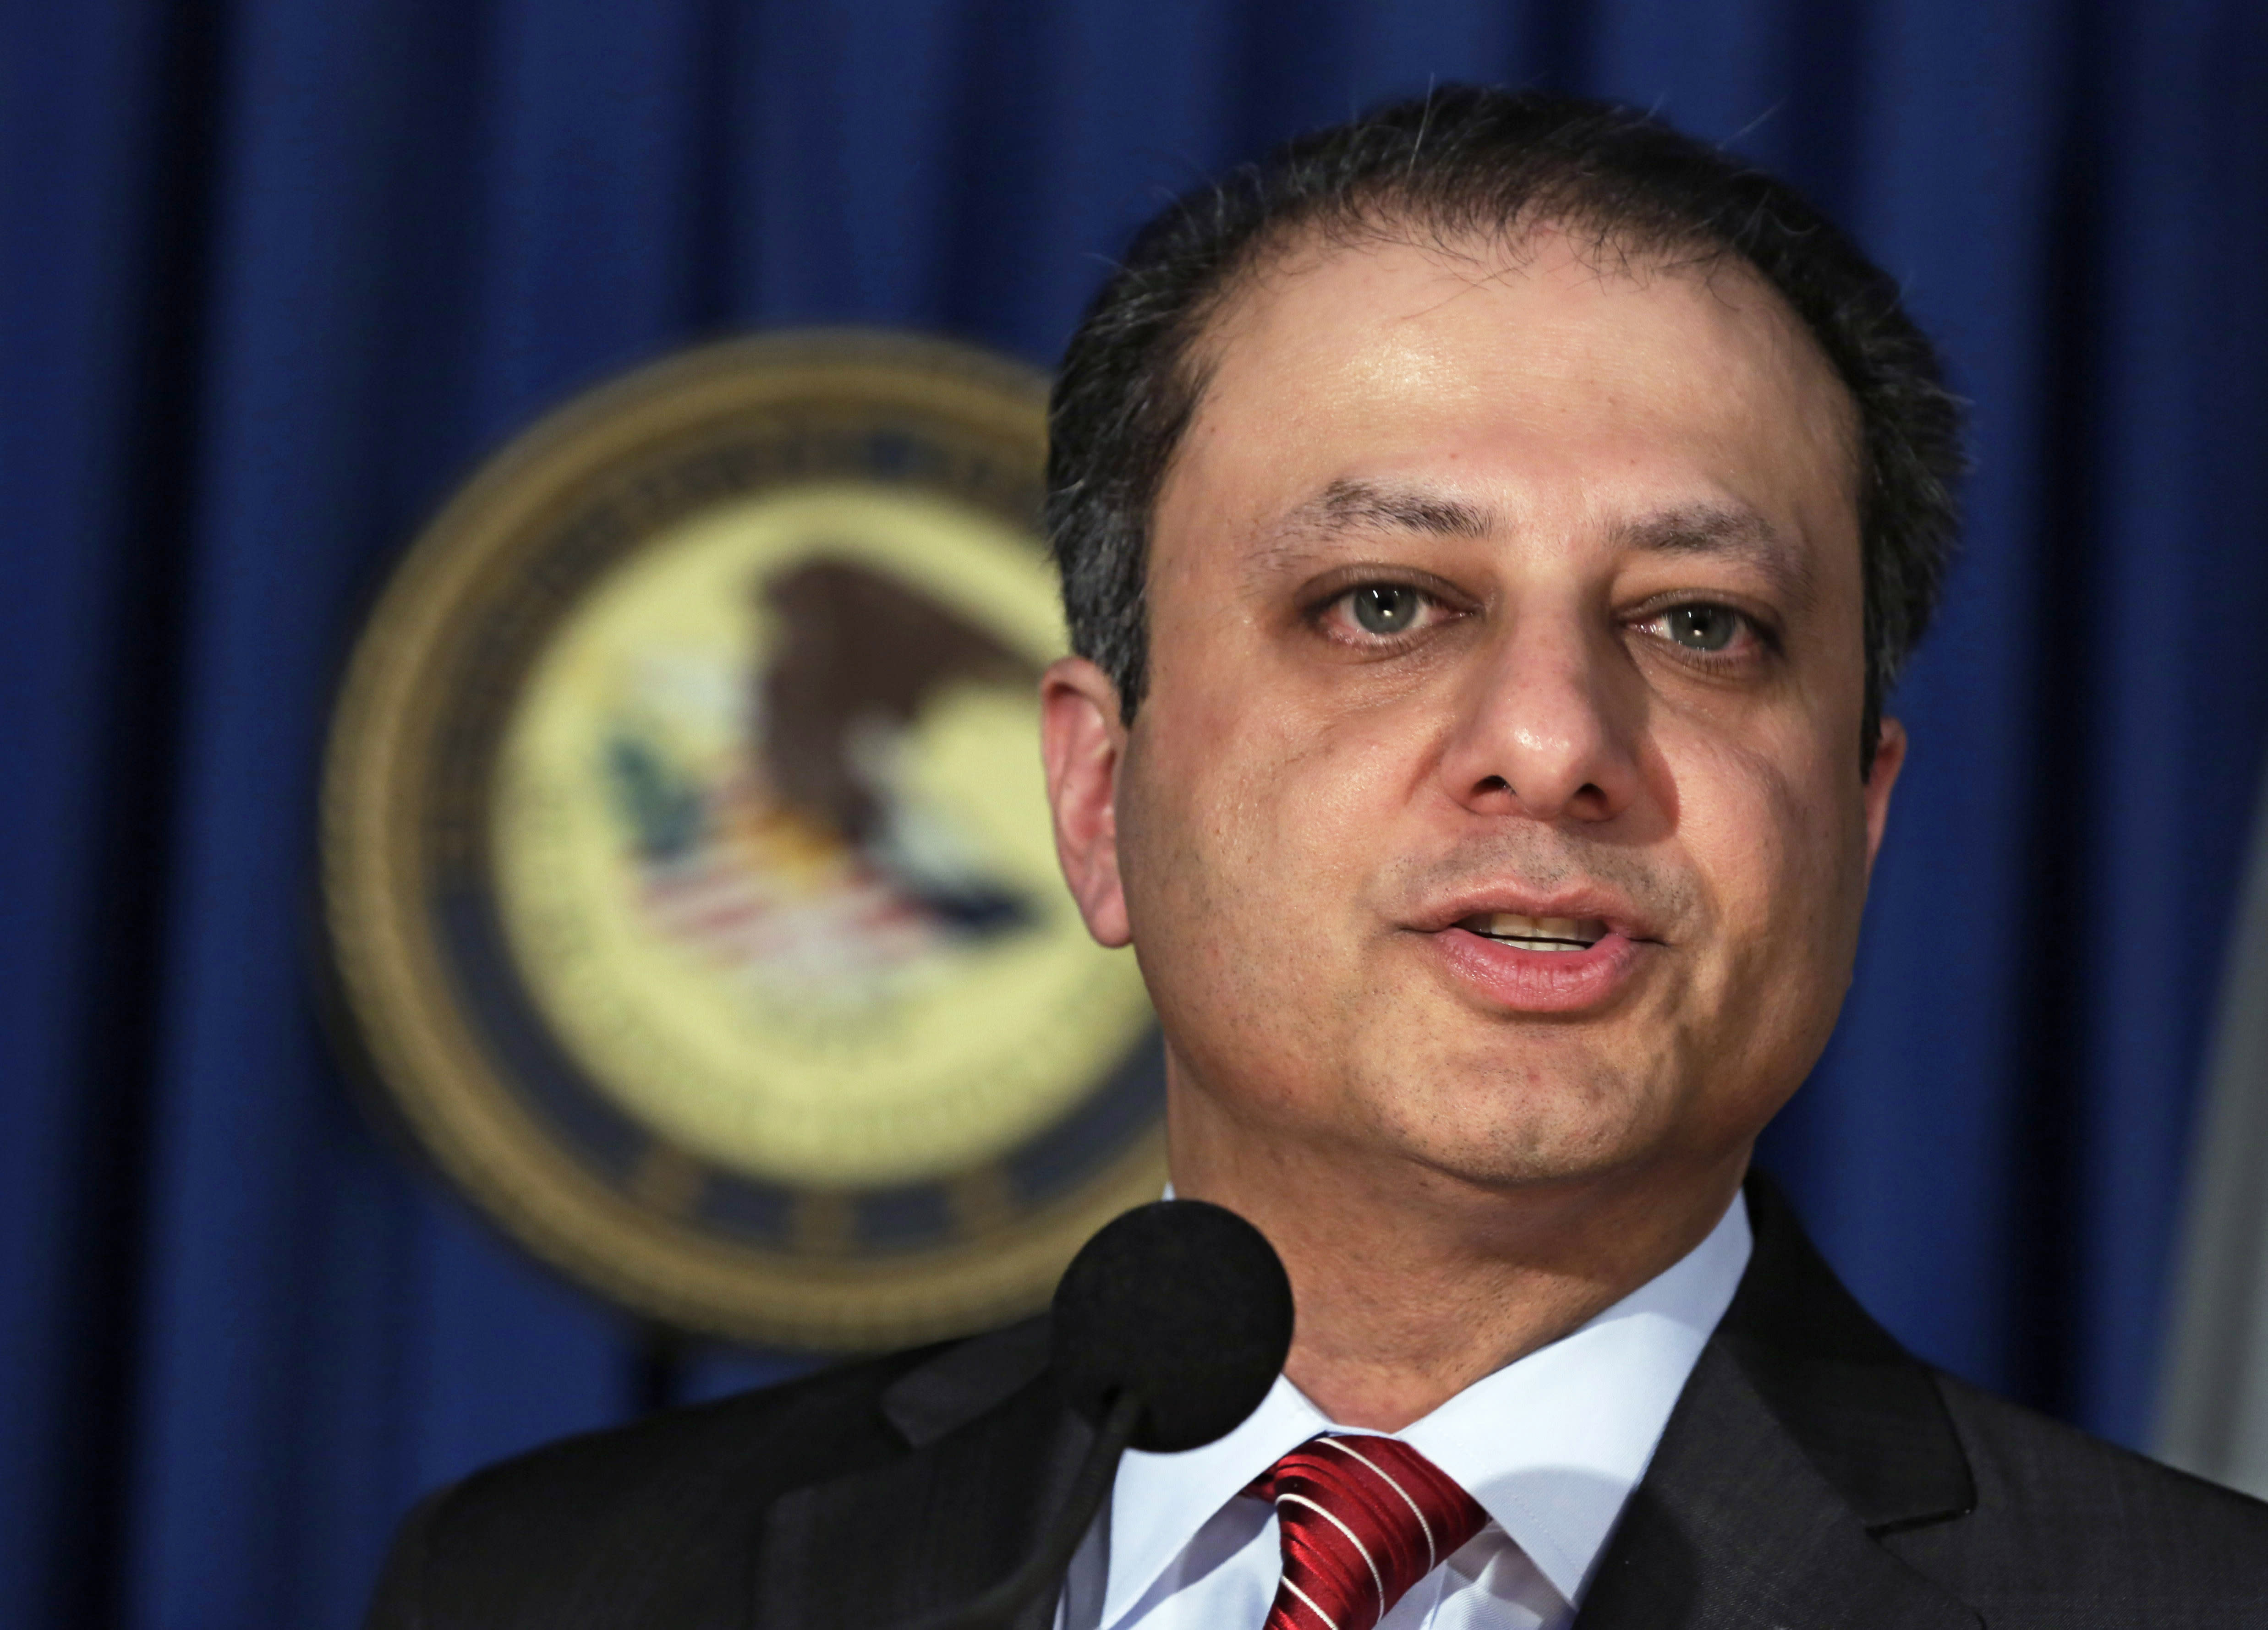 US attorney appears to focus on political favors in New York